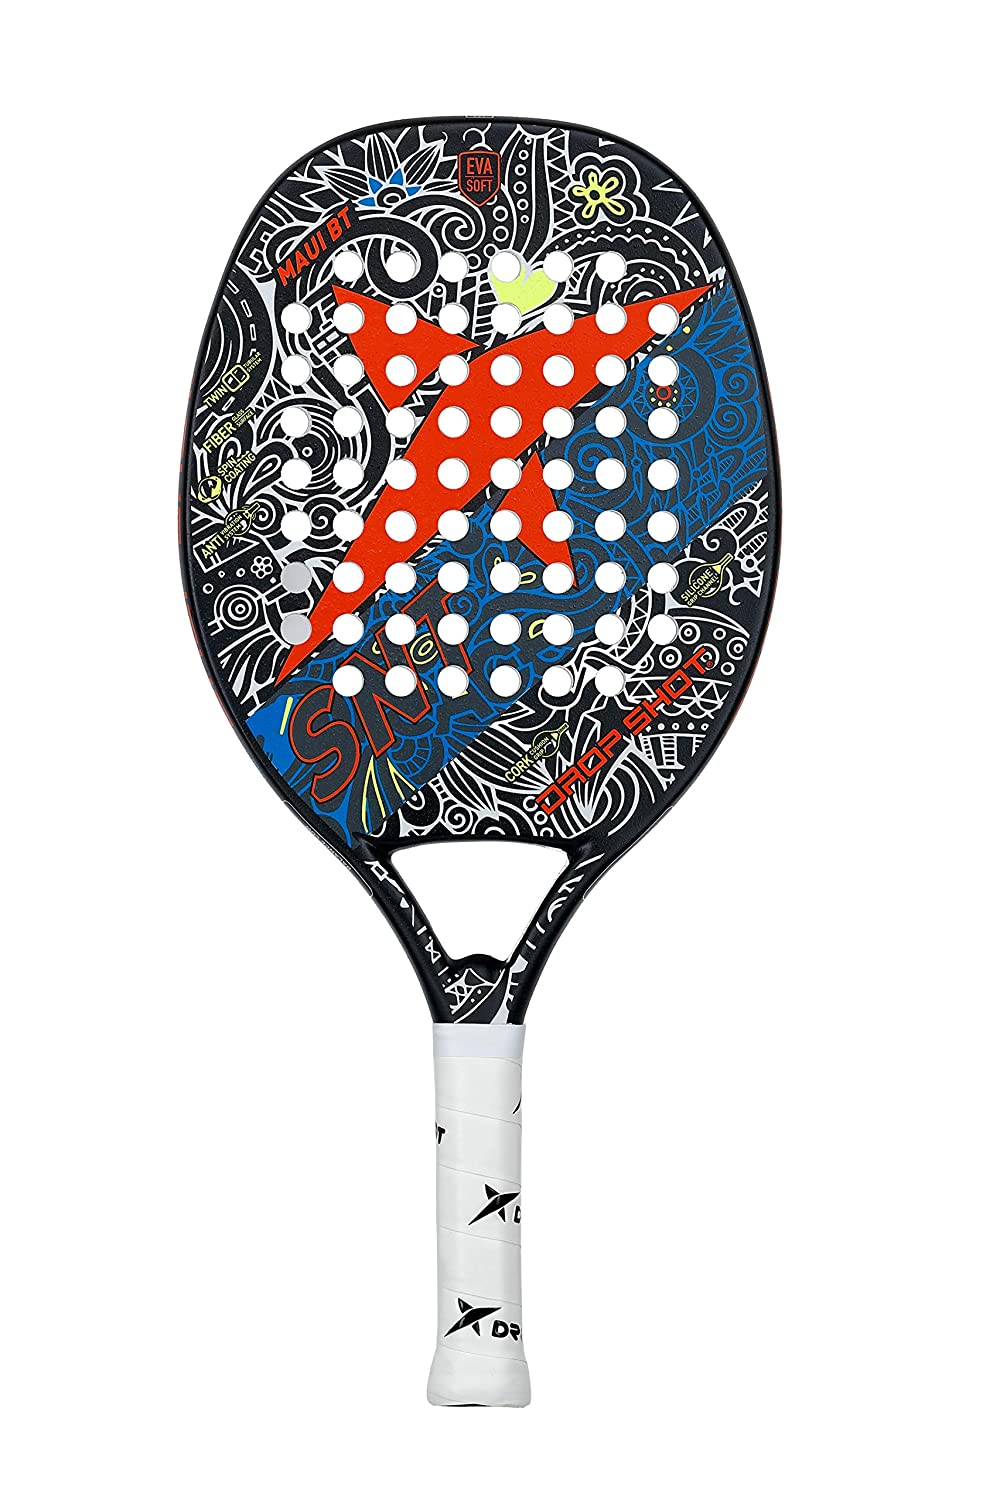 Amazon.com: Drop Shot Maui BT - Pala de tenis de playa ...